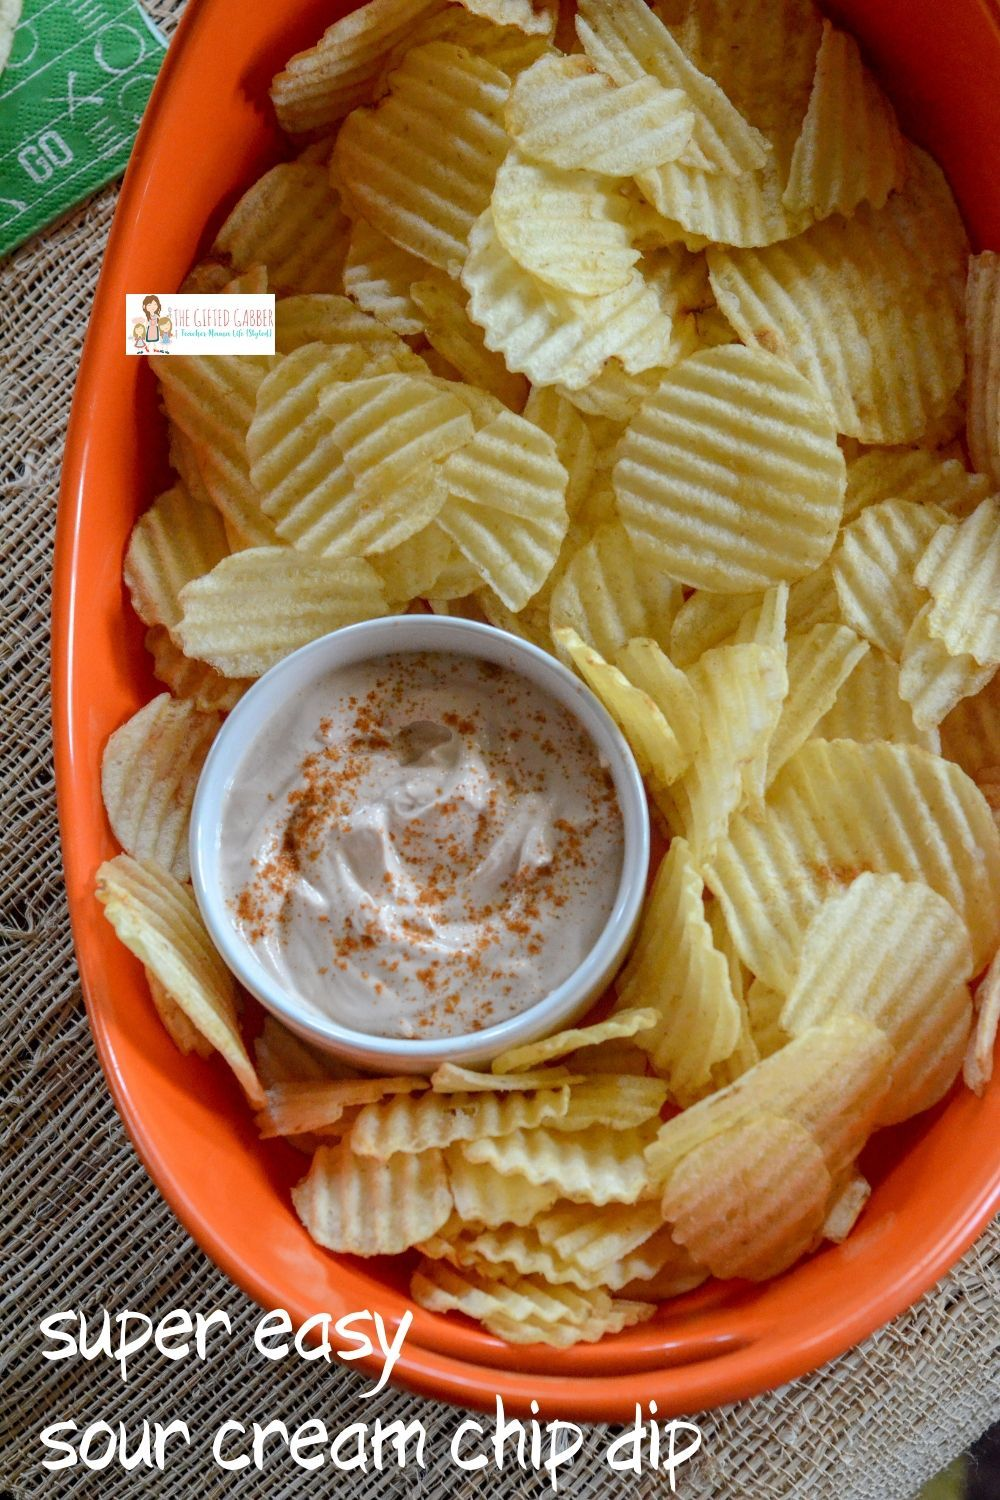 Bbq Dip For Potato Chips Easy Sour Cream Dip The Gifted Gabber Recipe In 2020 Sour Cream Chips Dip For Potato Chips Fruit Appetizers Recipes